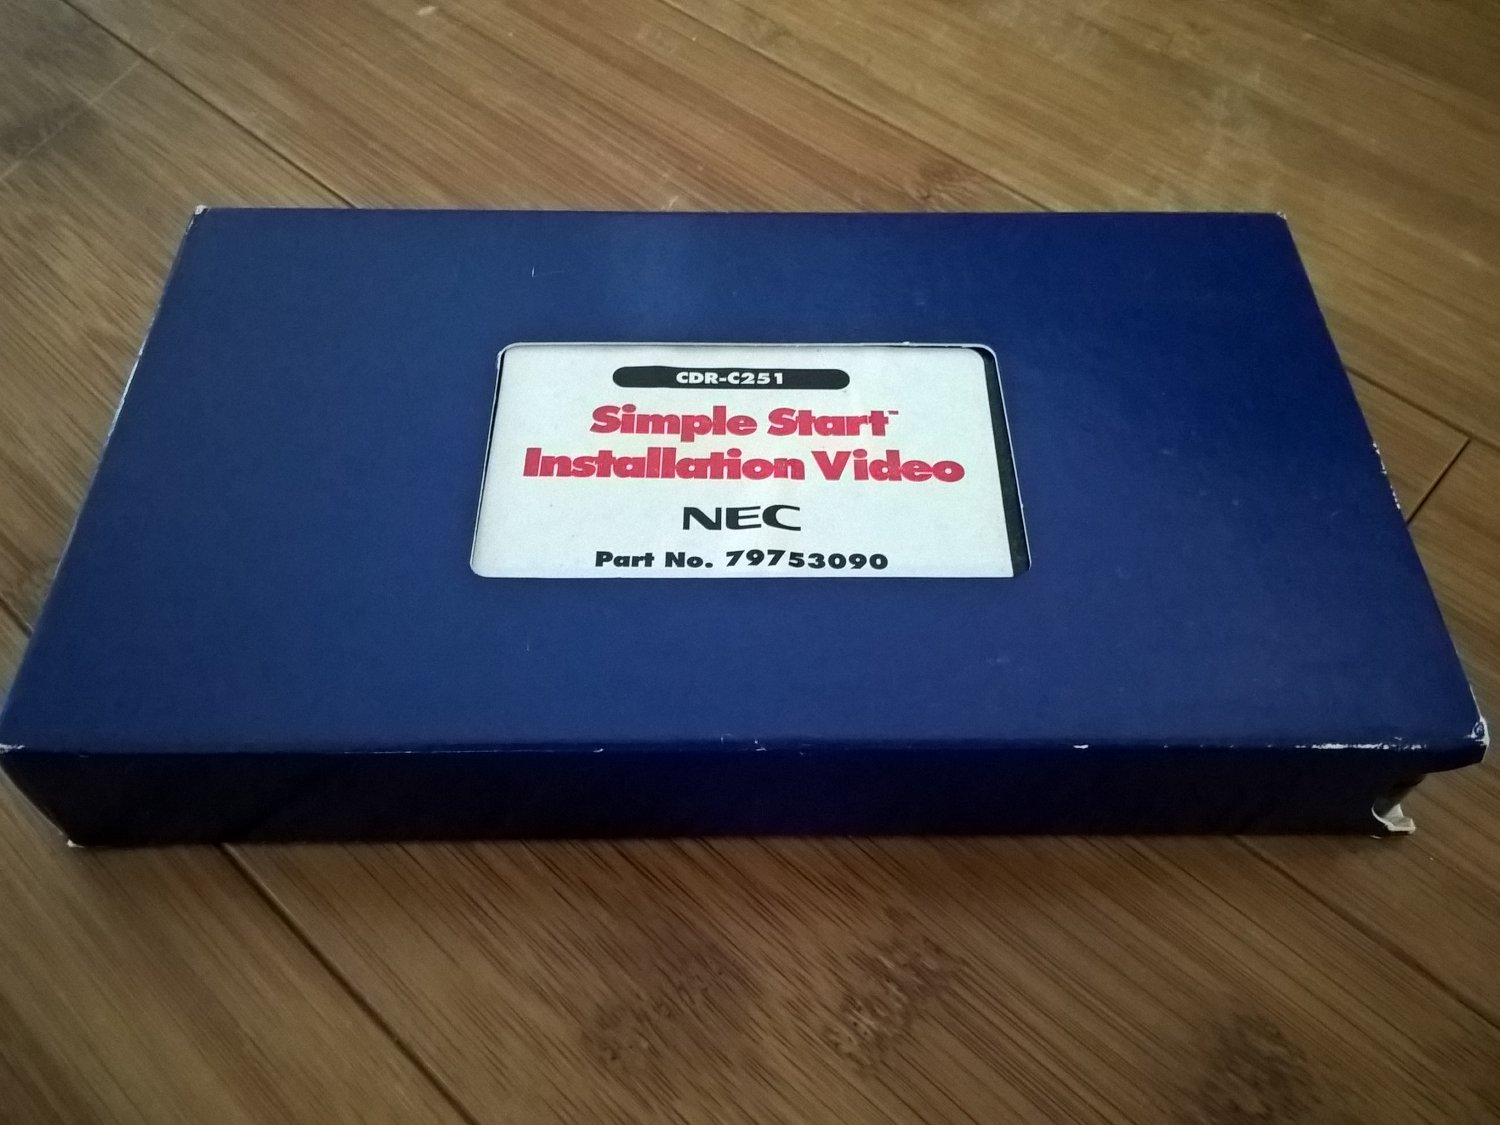 NEC 4x4 MultiSpin CD Changer Installation VHS, WORKING, Part No. 79753090